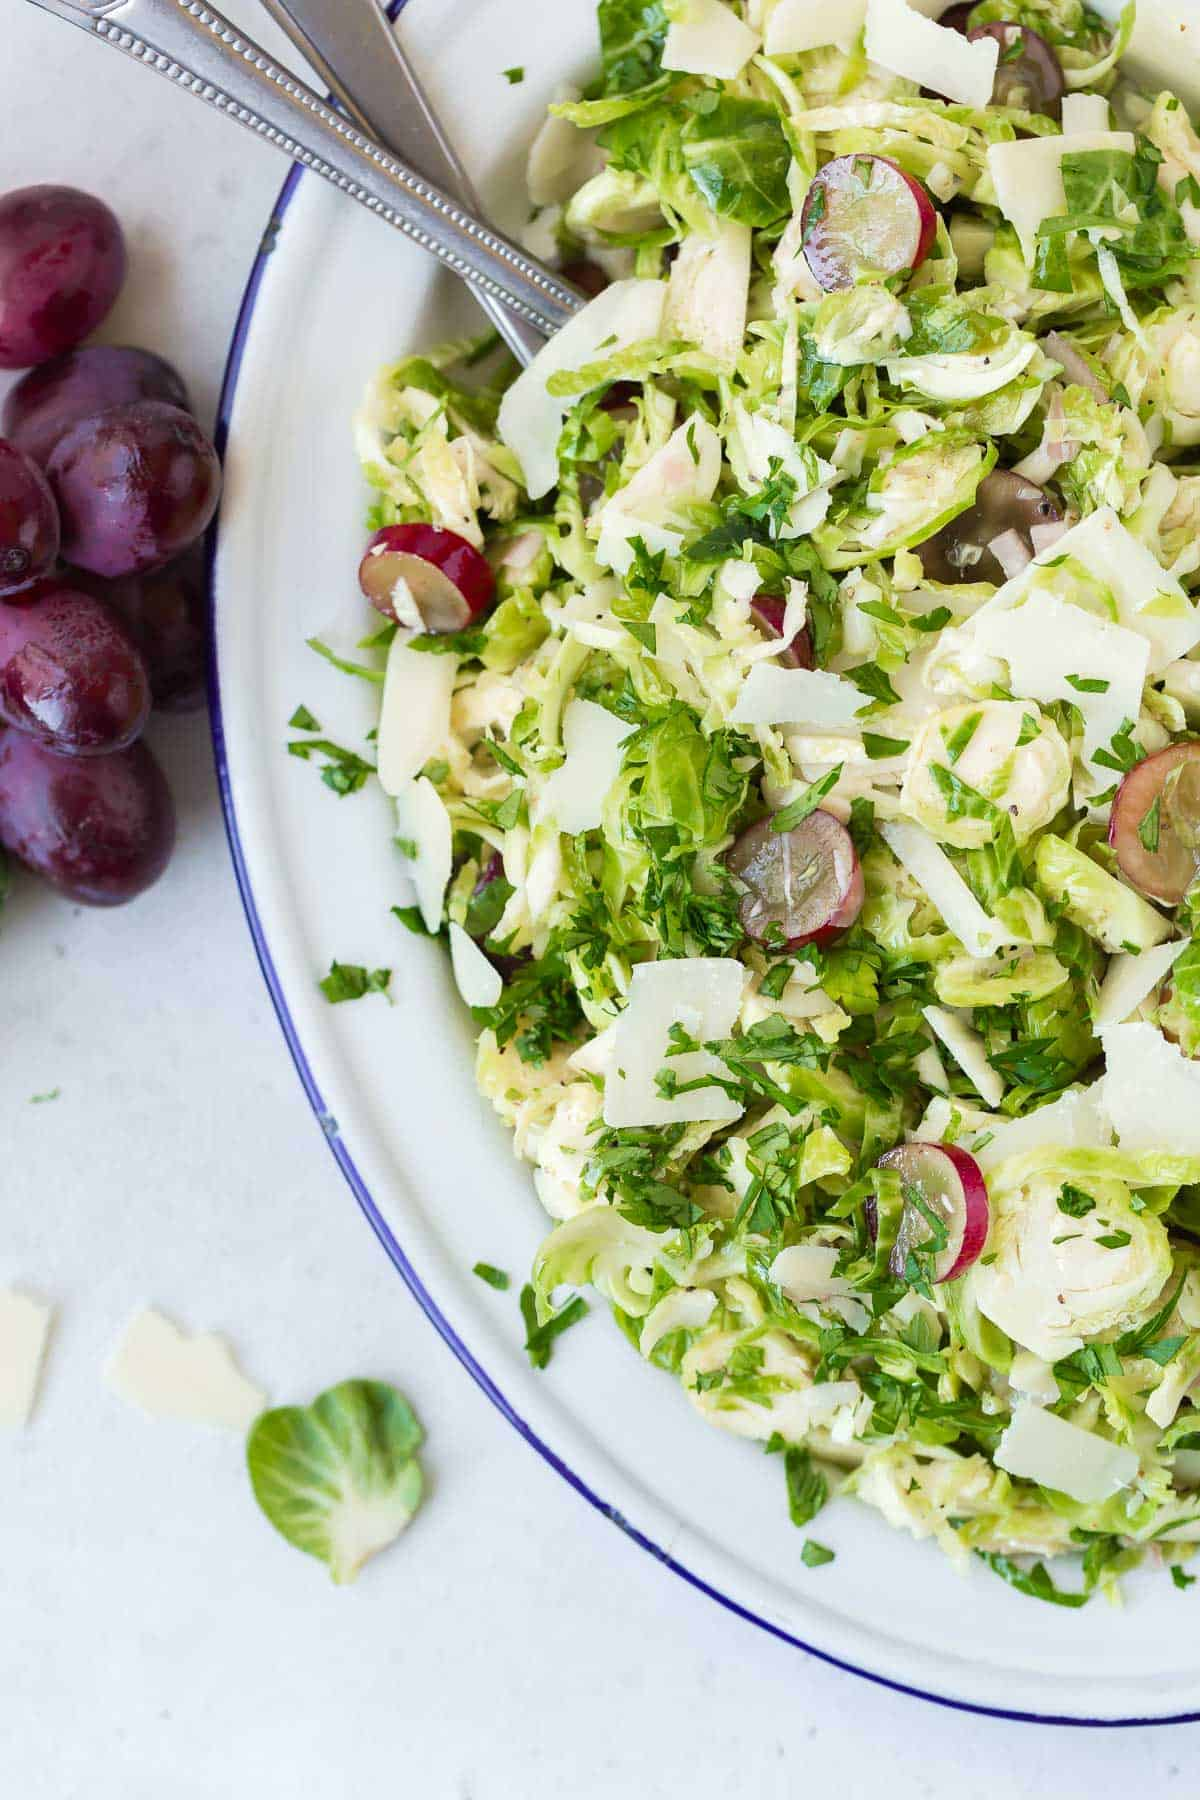 Shaved brussels sprouts salad with grapes, parsley, and parmesan cheese.